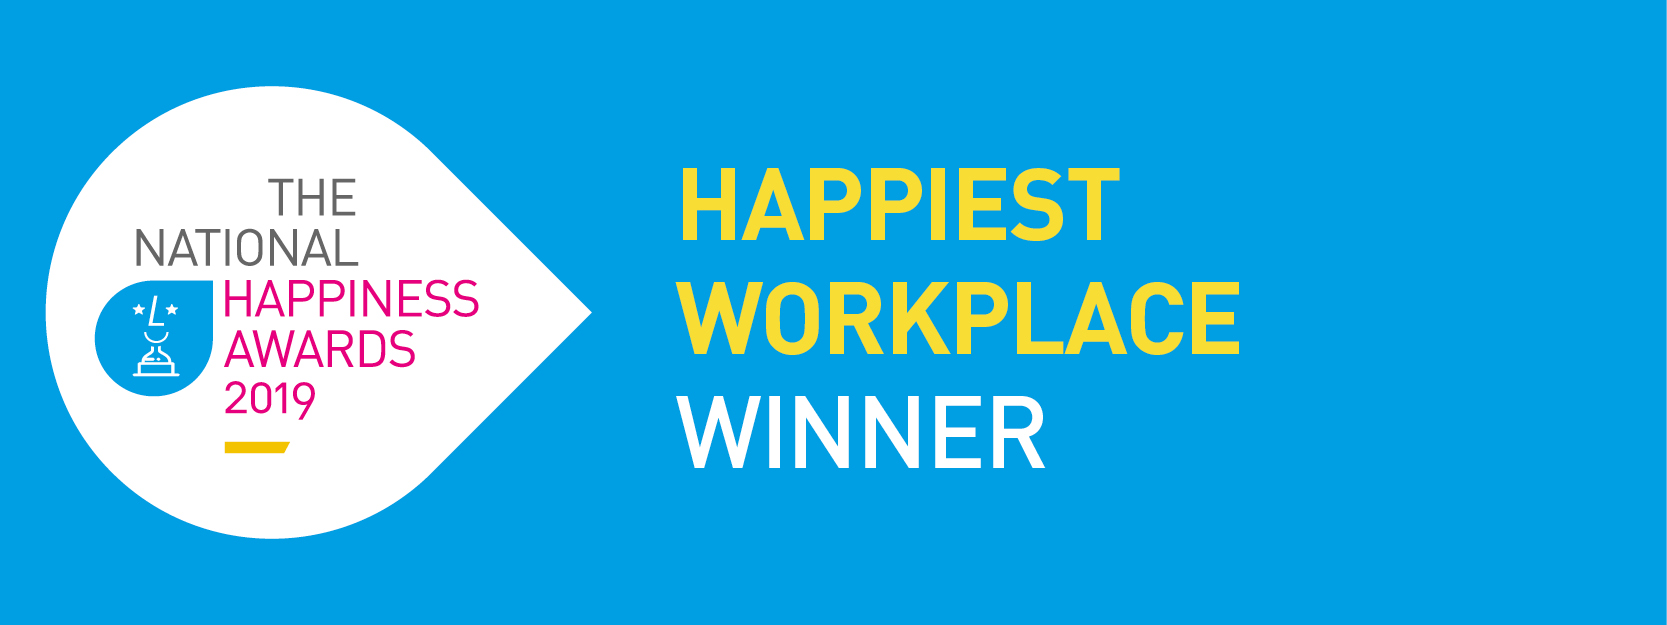 Happiest Workplace Award 2019 Logo